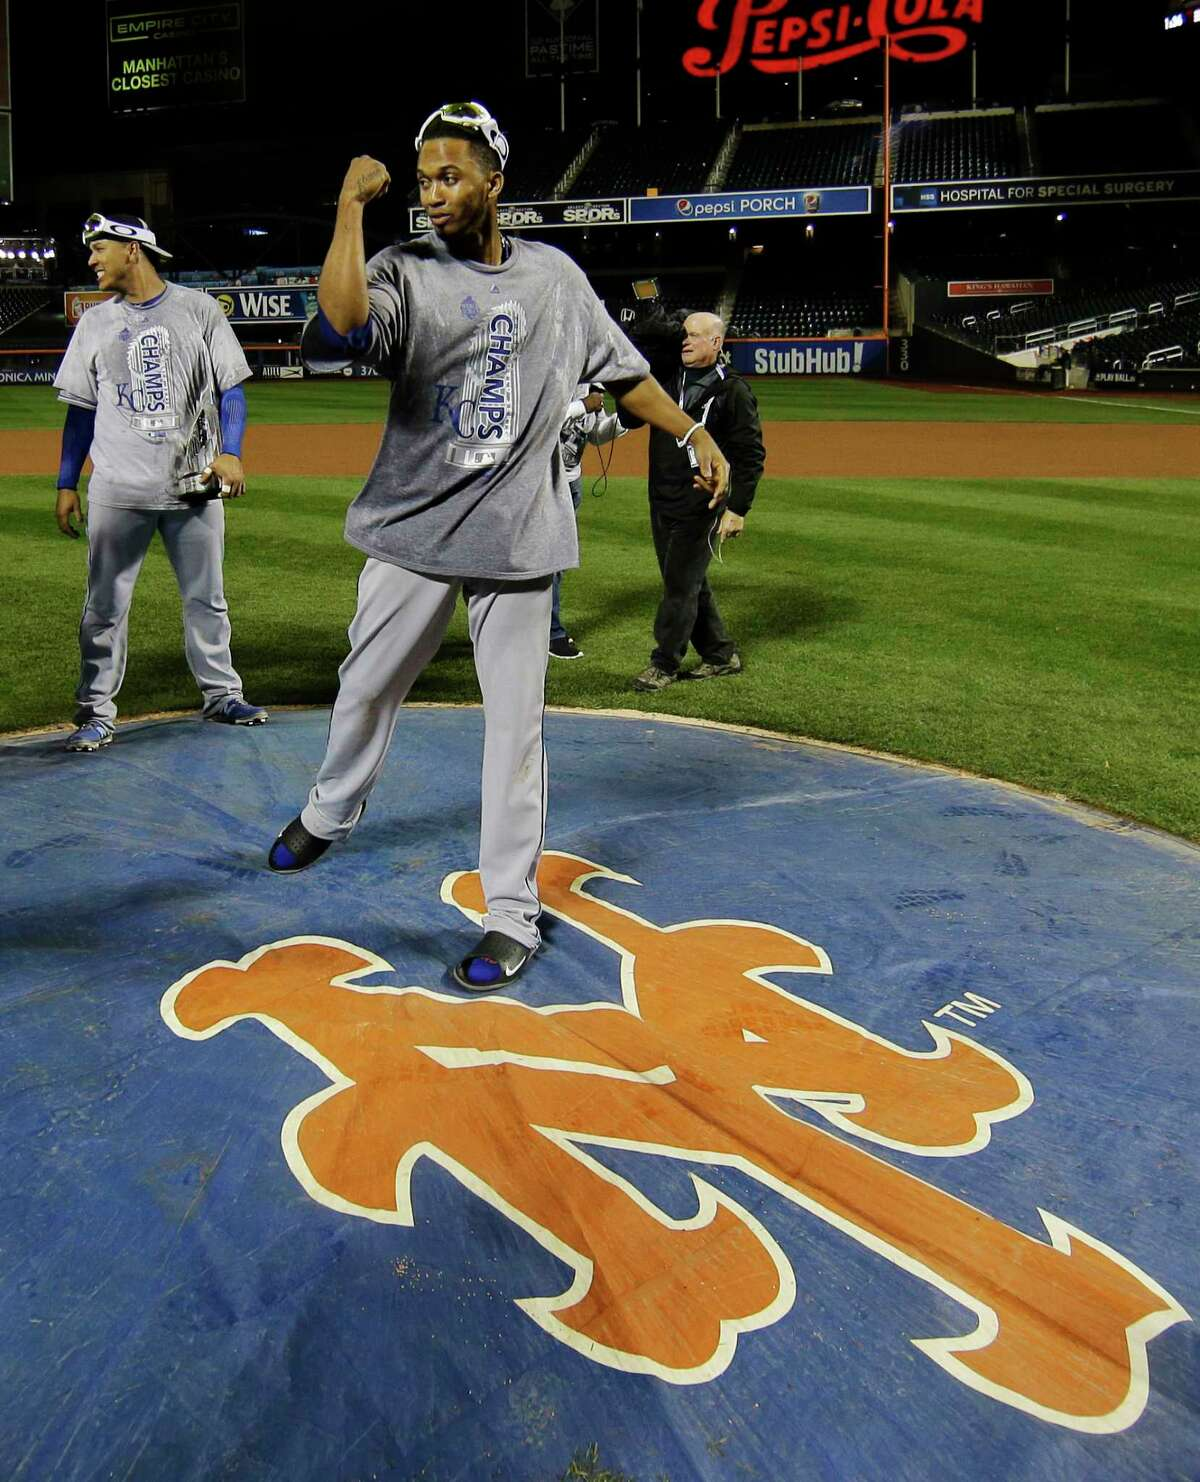 Kansas City Royals shortstop Alcides Escobar poses on the New York Mets logo after Game 5 of the World Series Monday night in New York.